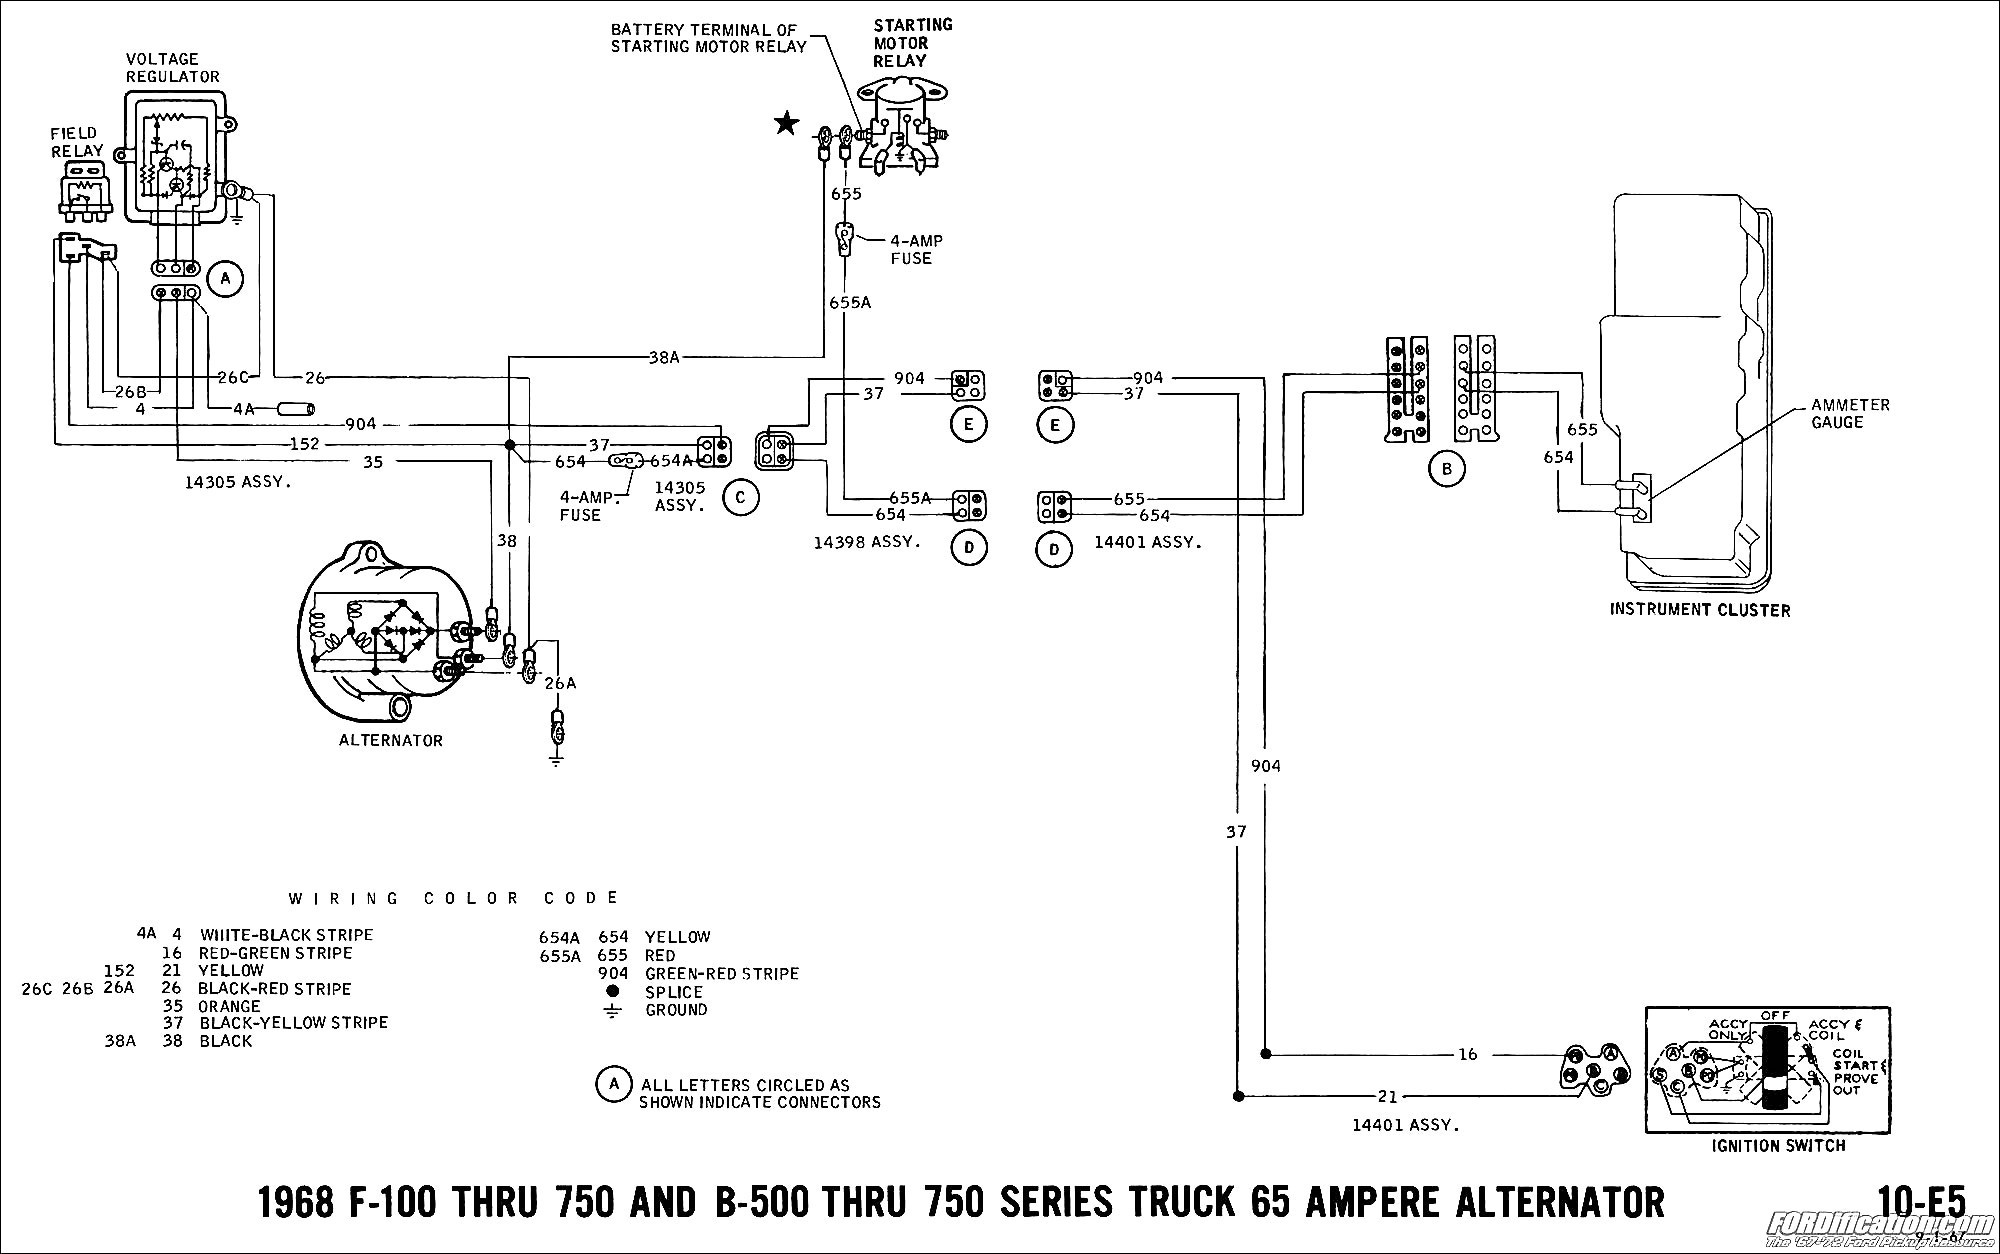 hight resolution of 1989 ford tractor 6610 alternator wiring diagram wiring diagram ford 600 tractor wiring diagram 1989 ford